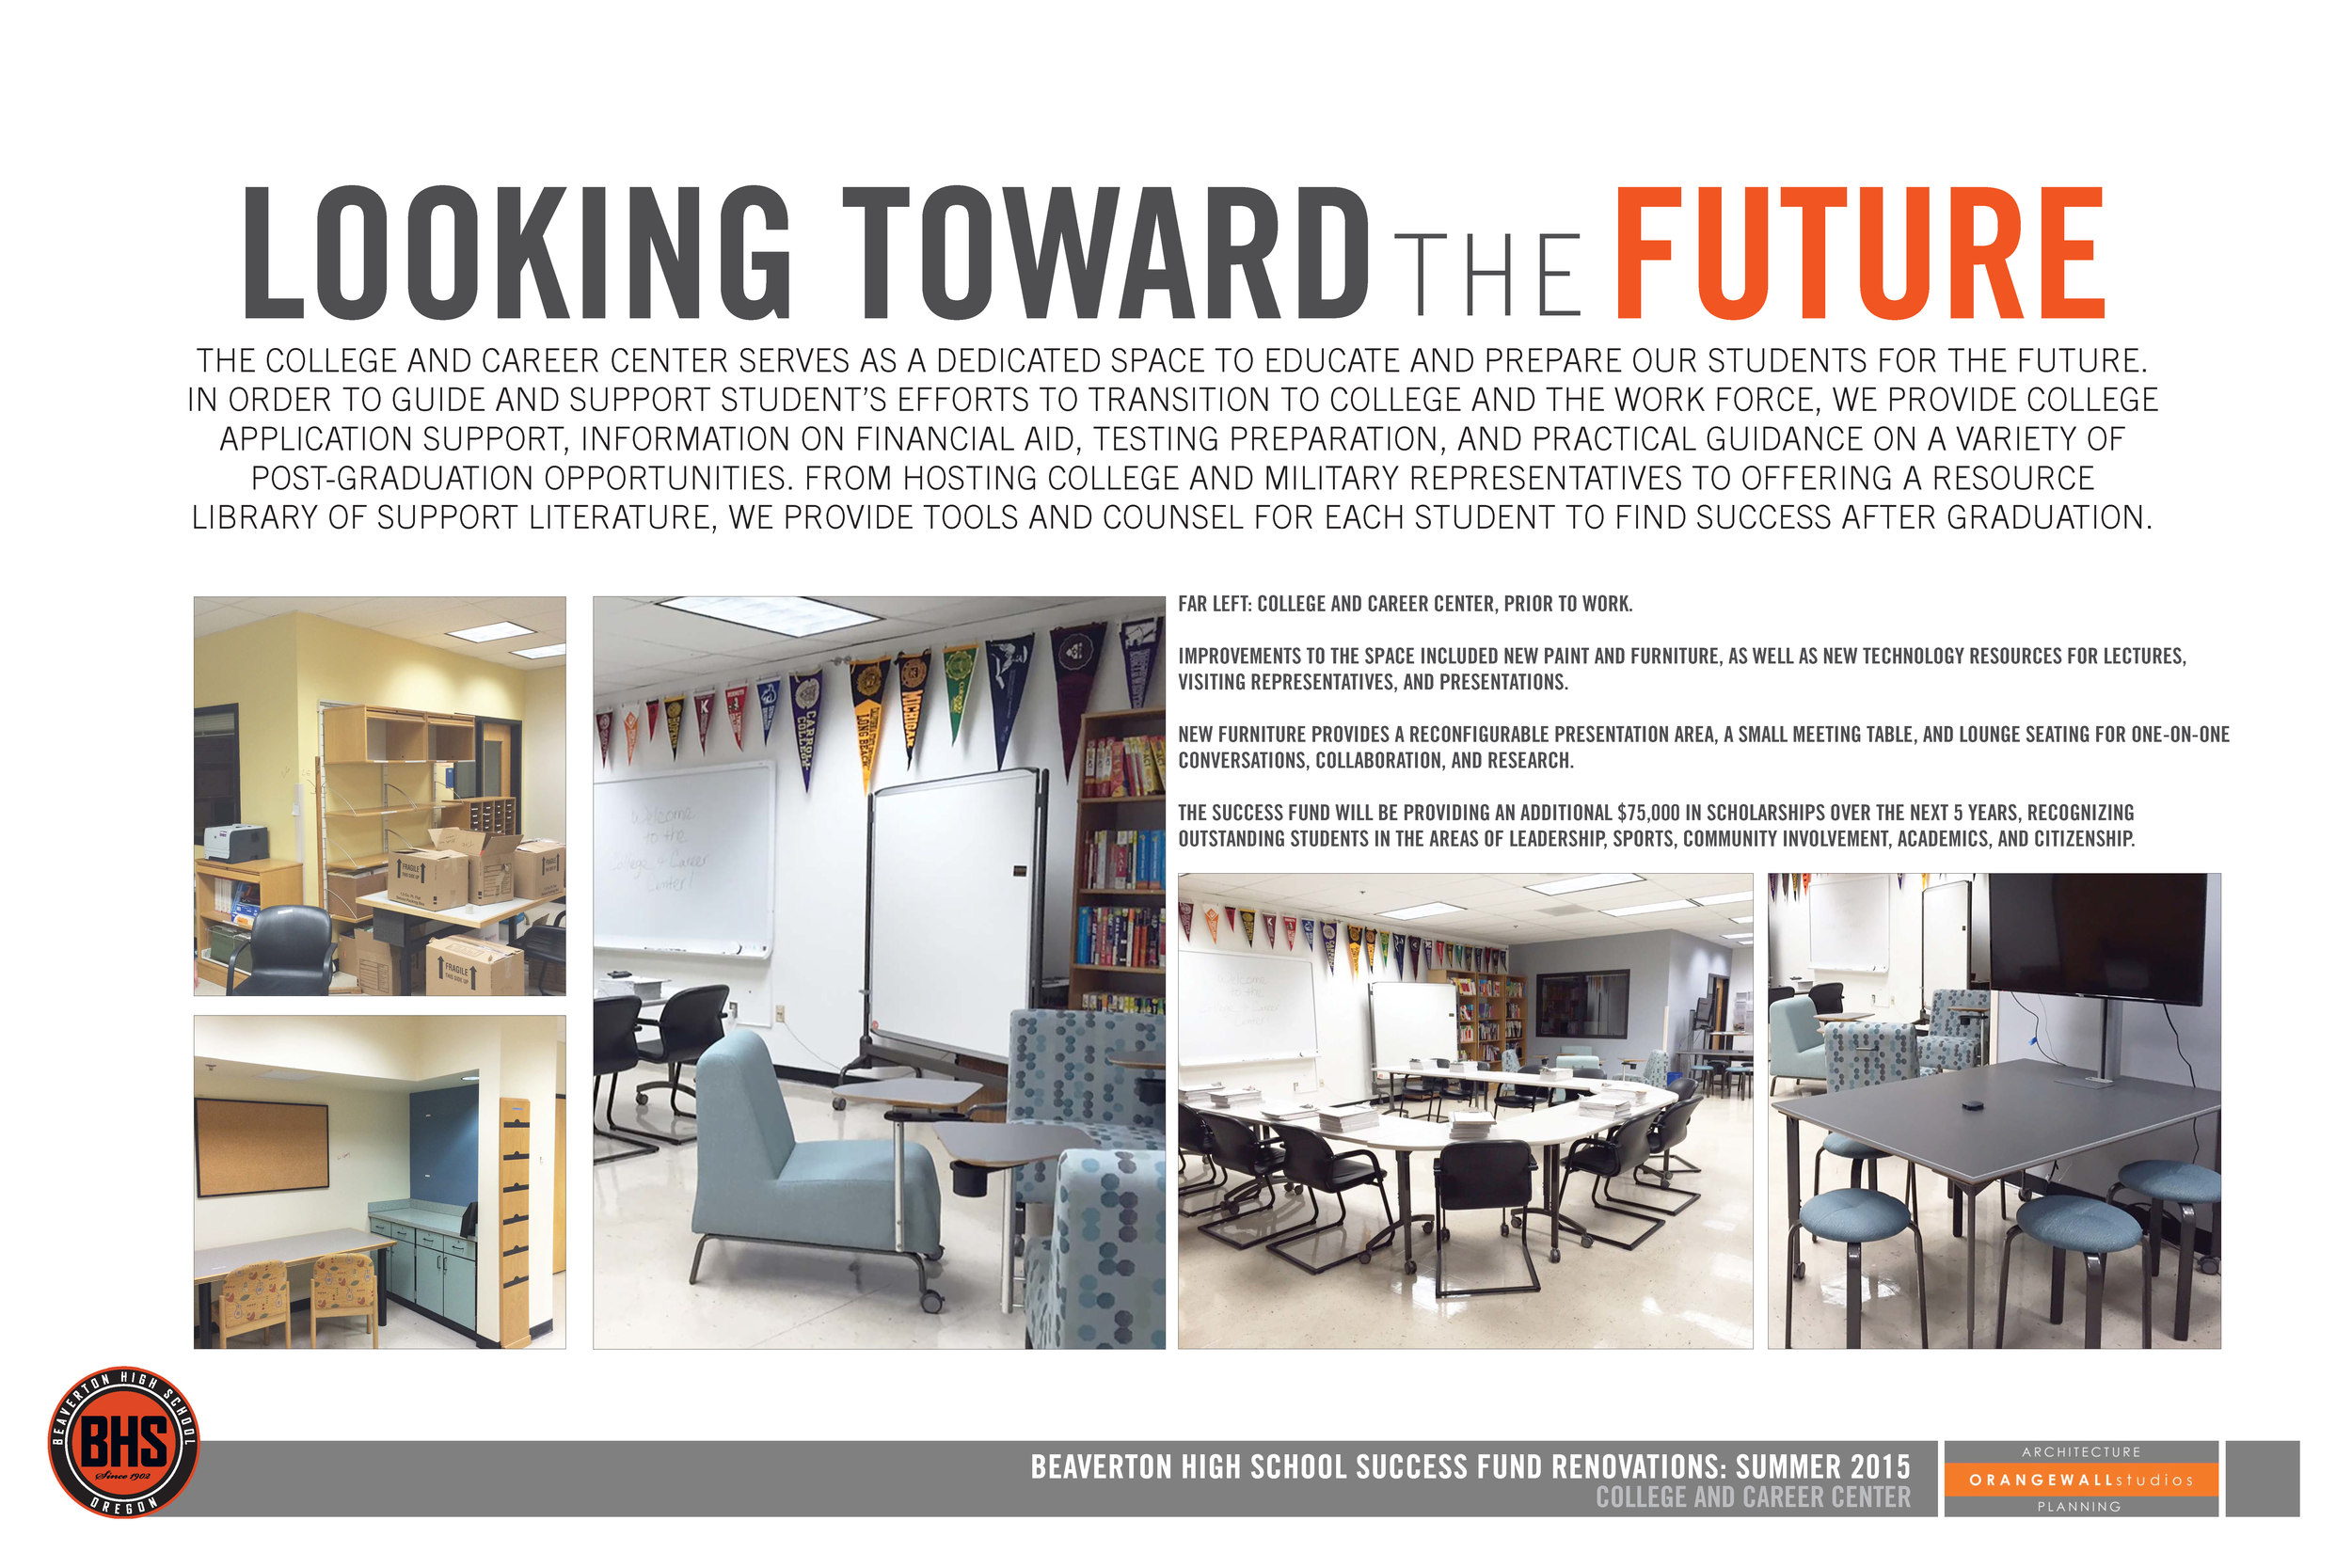 15_10_2_BHS SPACE IMPROVEMENTS_Page_4.jpg